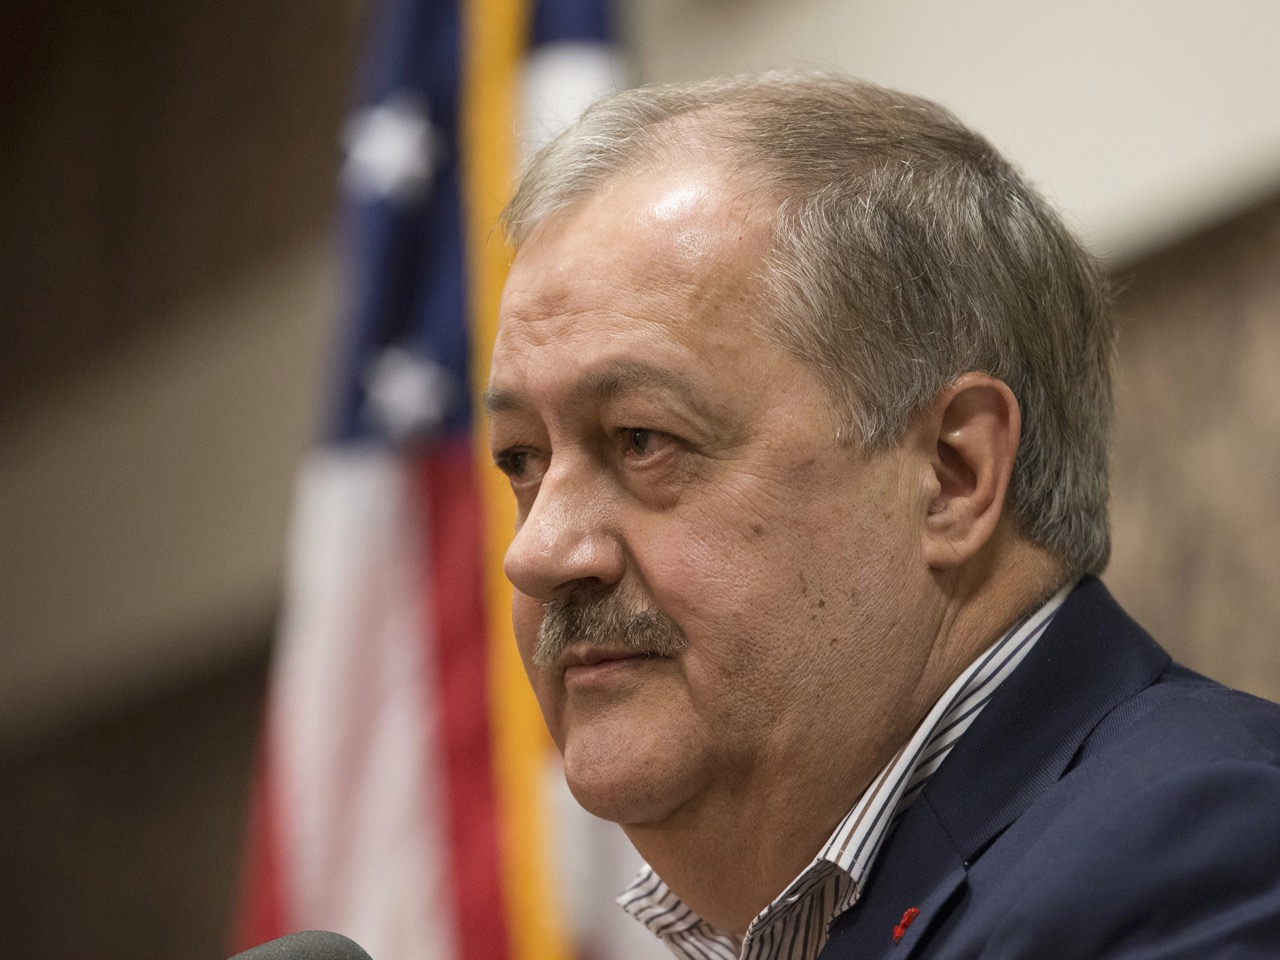 Blankenship bid divides West Virginia, as GOP primary rivals praise Trump intervention